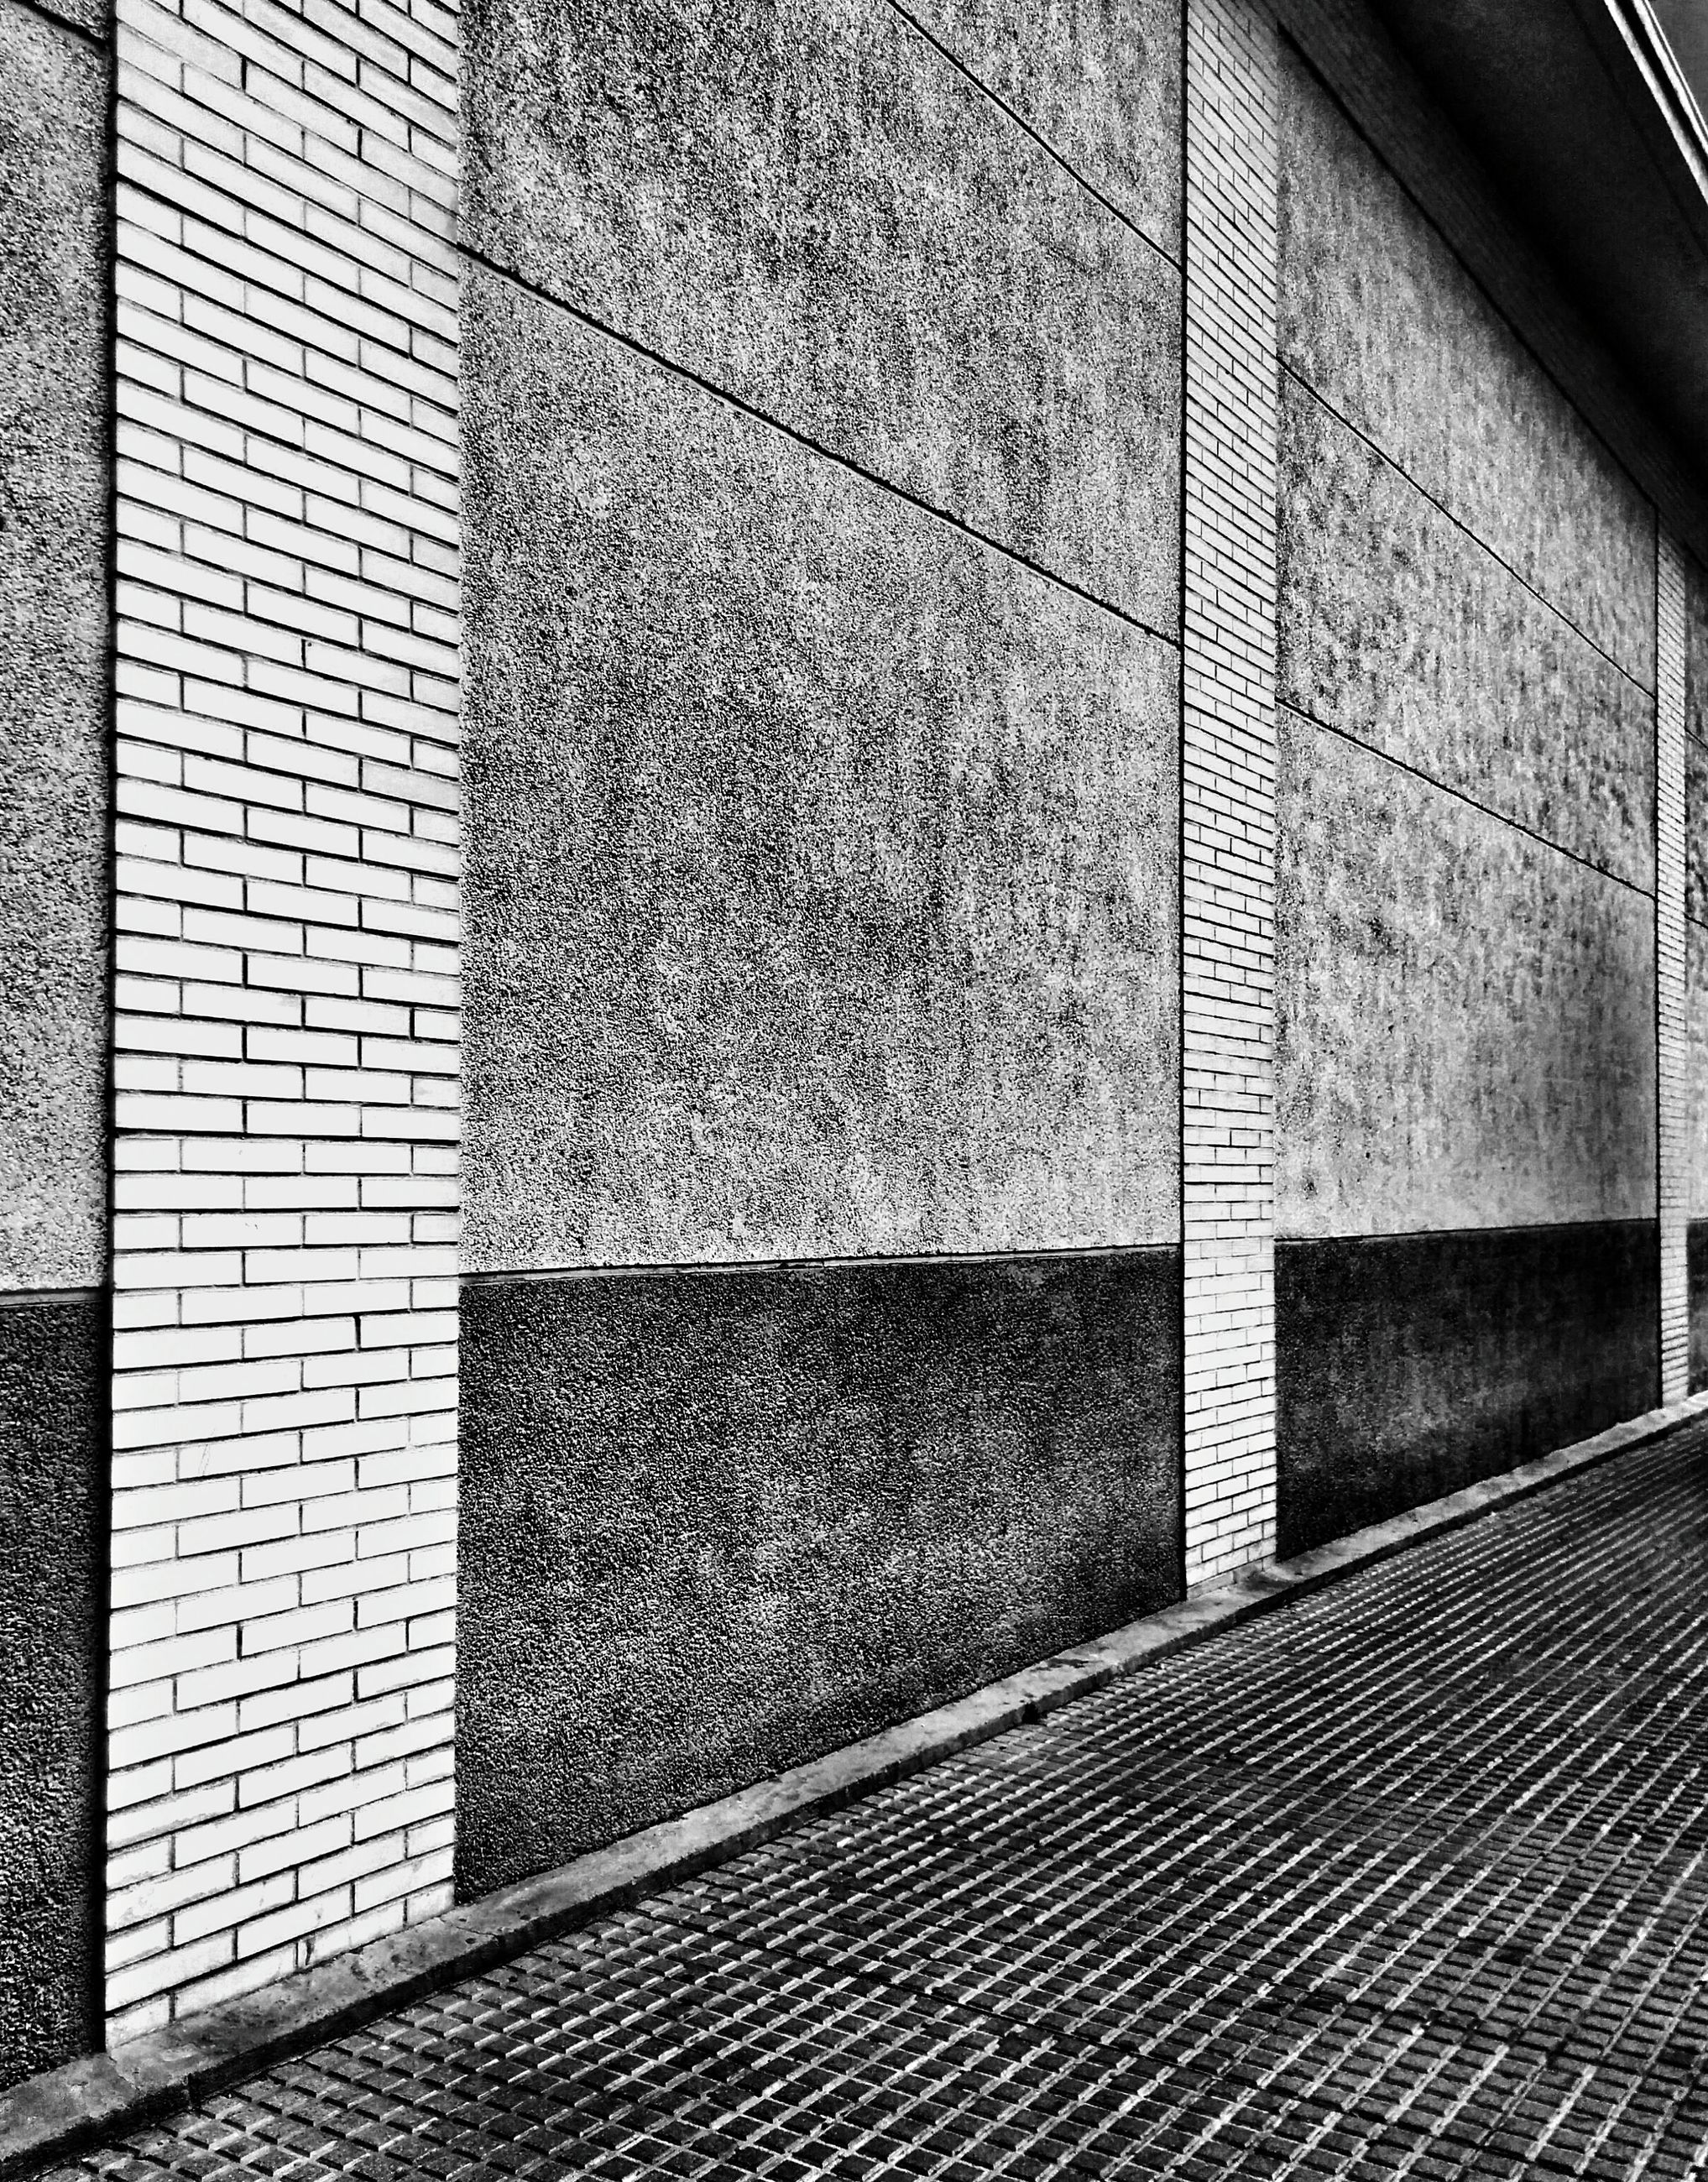 architecture, built structure, pattern, building exterior, wall - building feature, steps, indoors, design, sunlight, steps and staircases, day, no people, shadow, railing, textured, staircase, building, high angle view, wall, brick wall